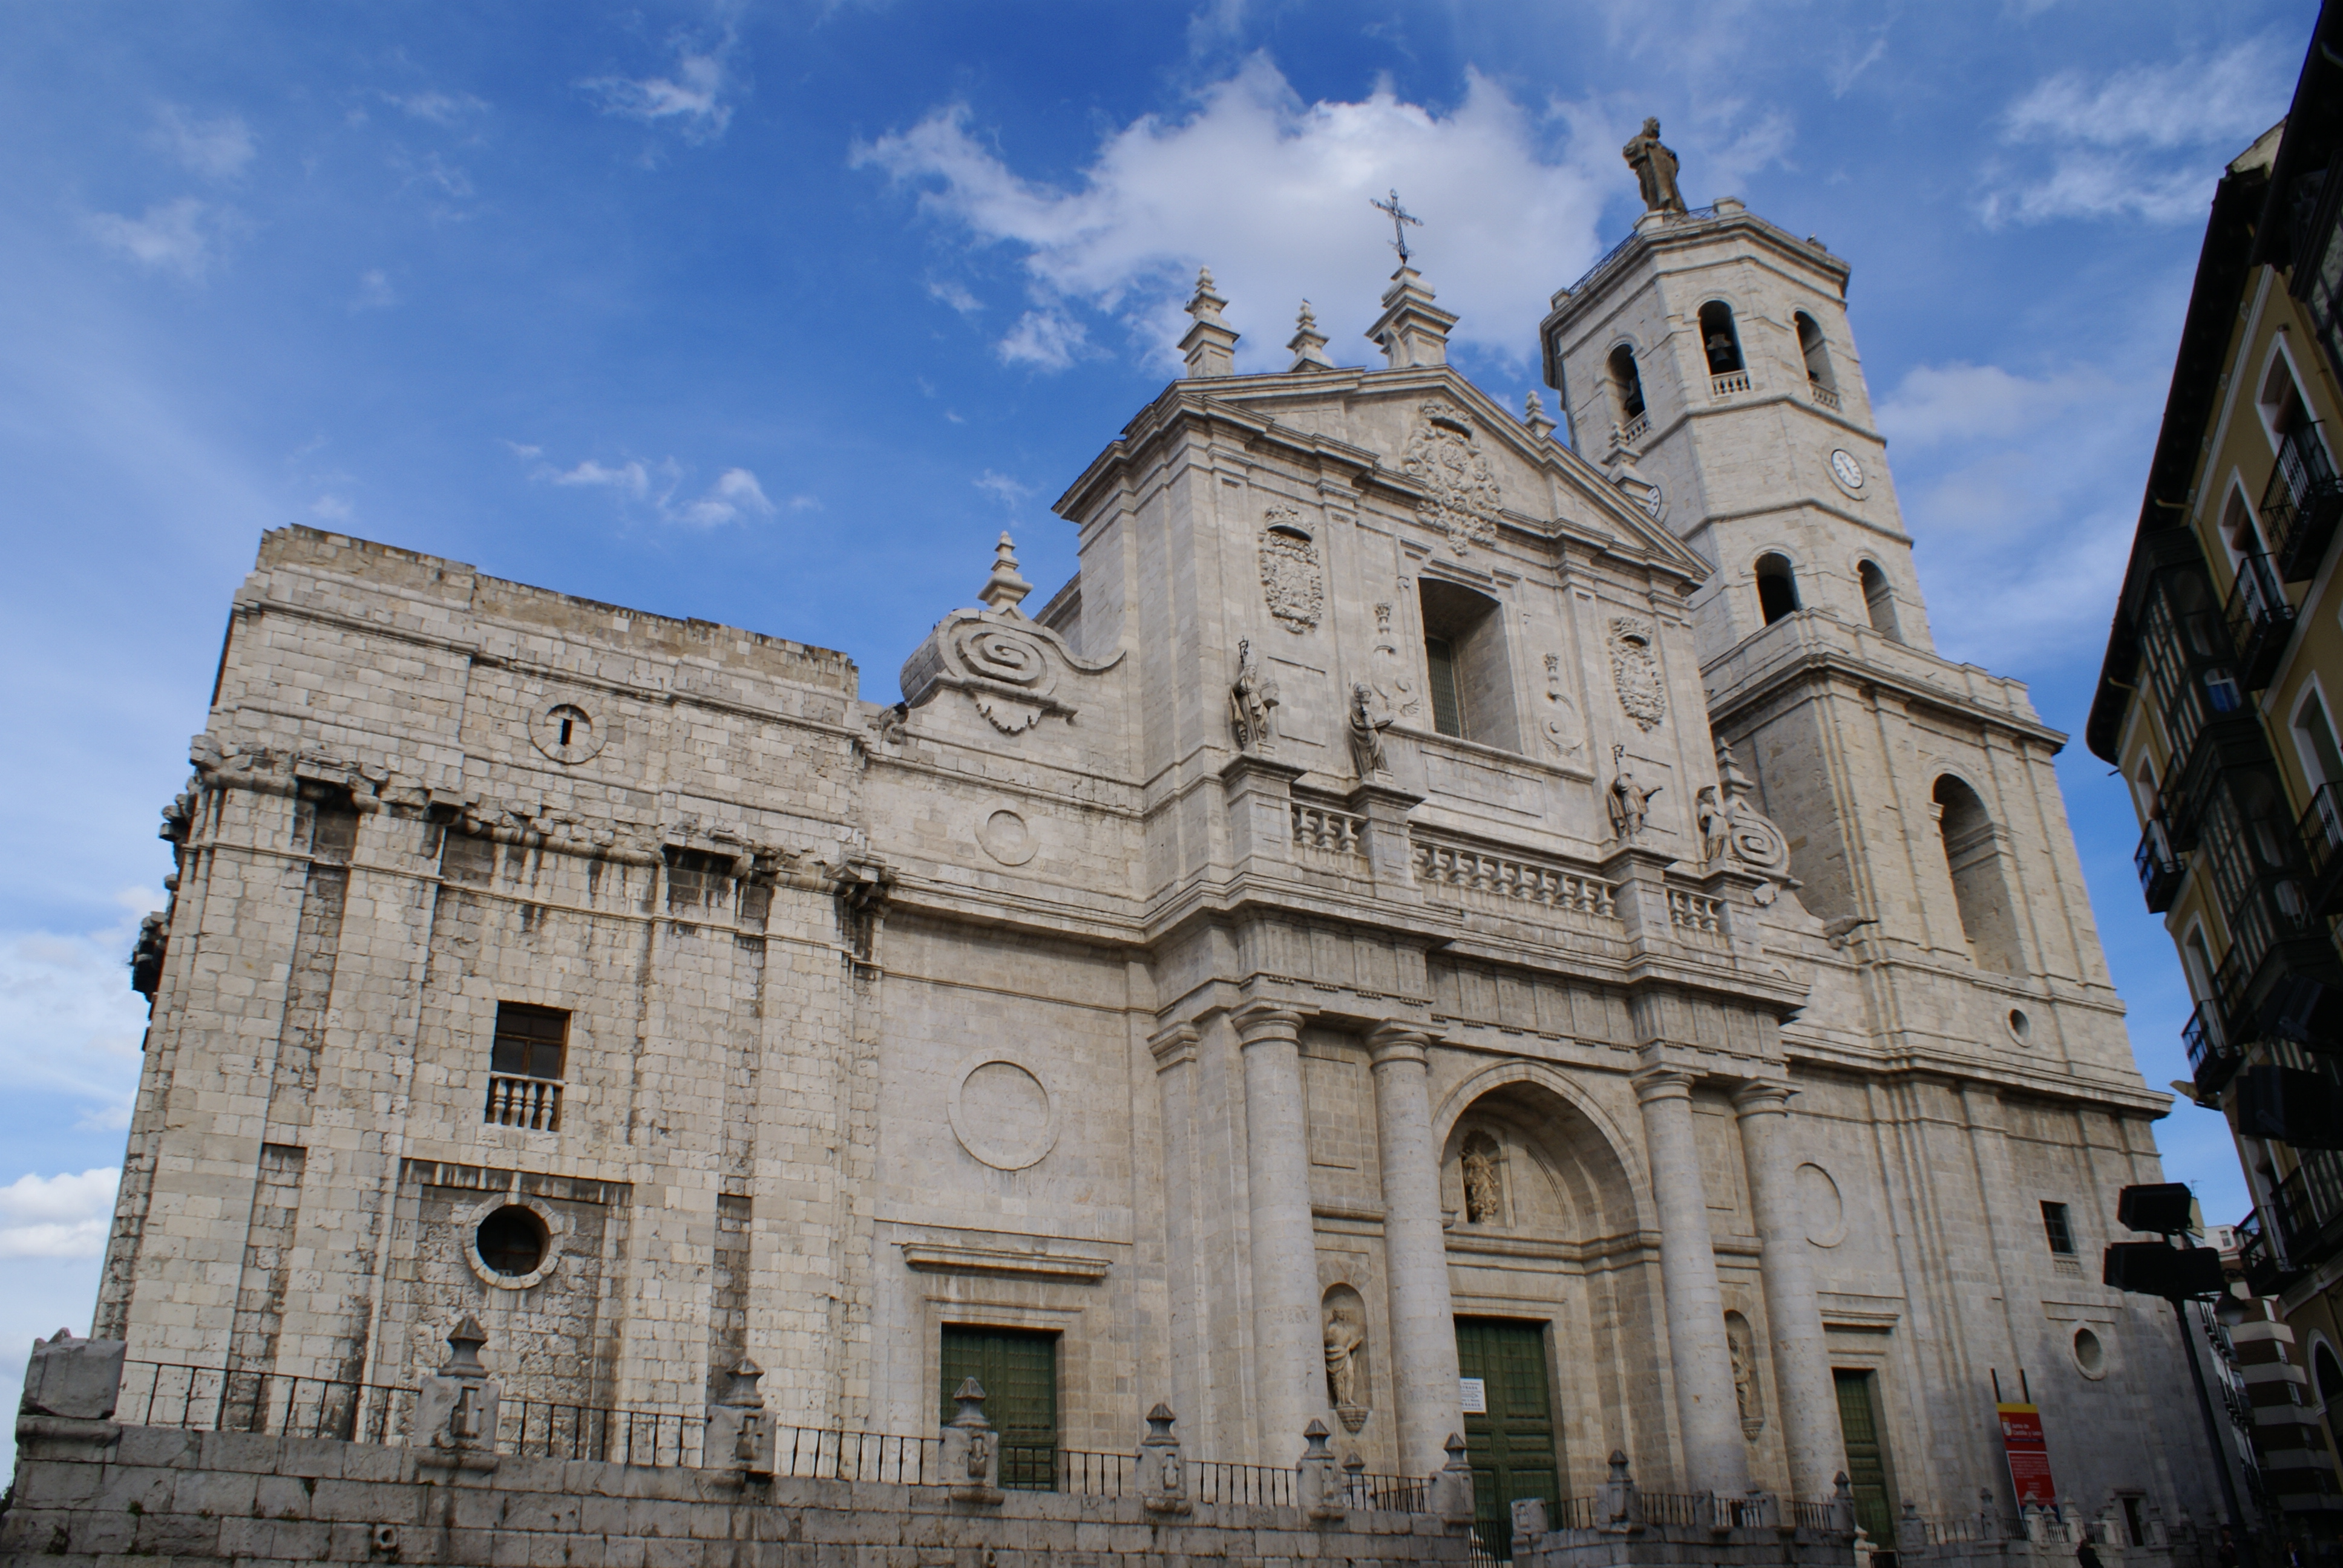 Valladolid Spain  city photos gallery : Valladolid Catedral Wikimedia Commons